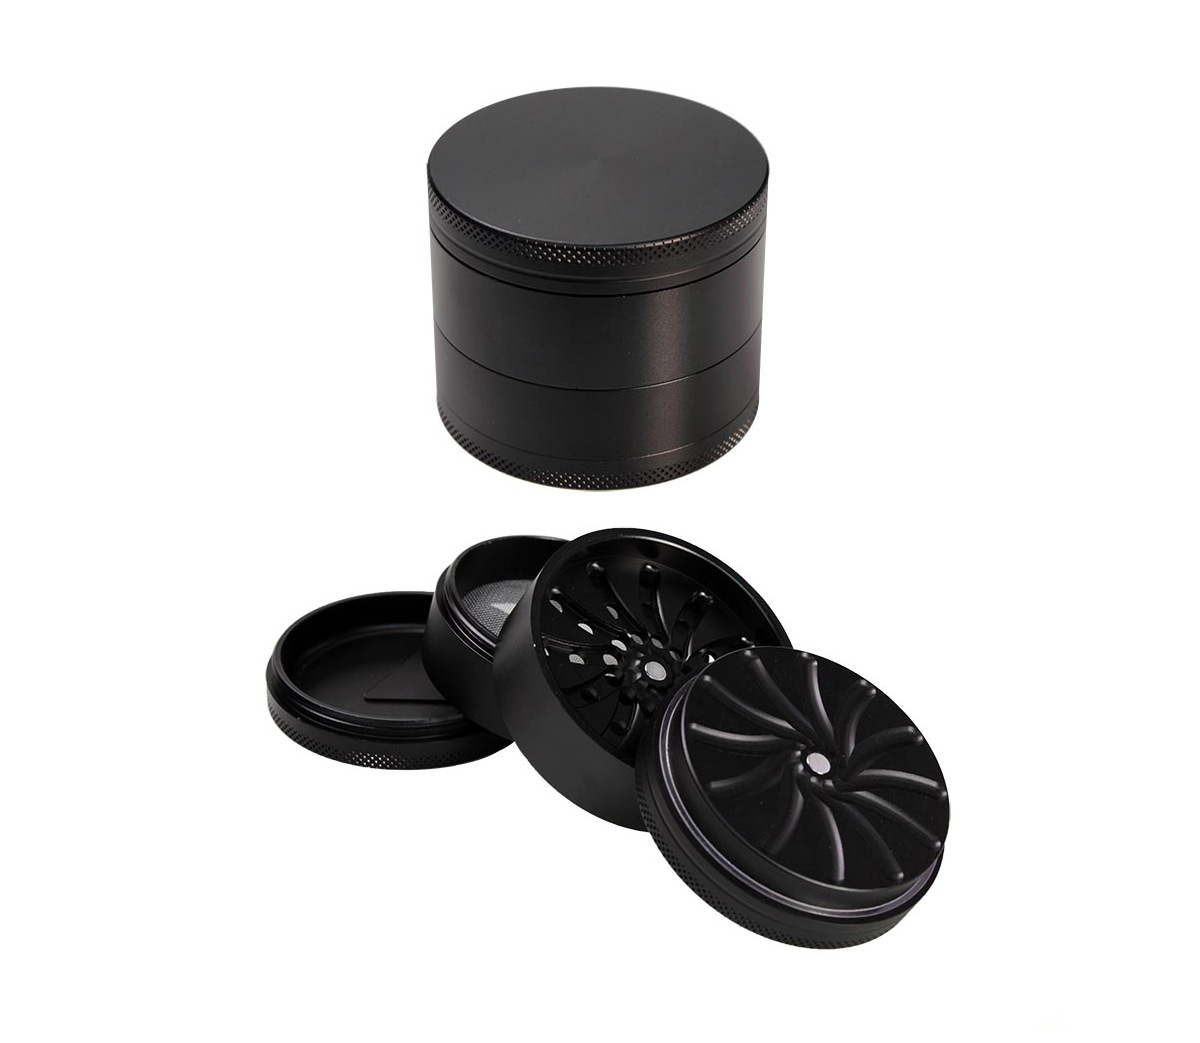 Masher Aluminium Grinder 4-part Black 53mm